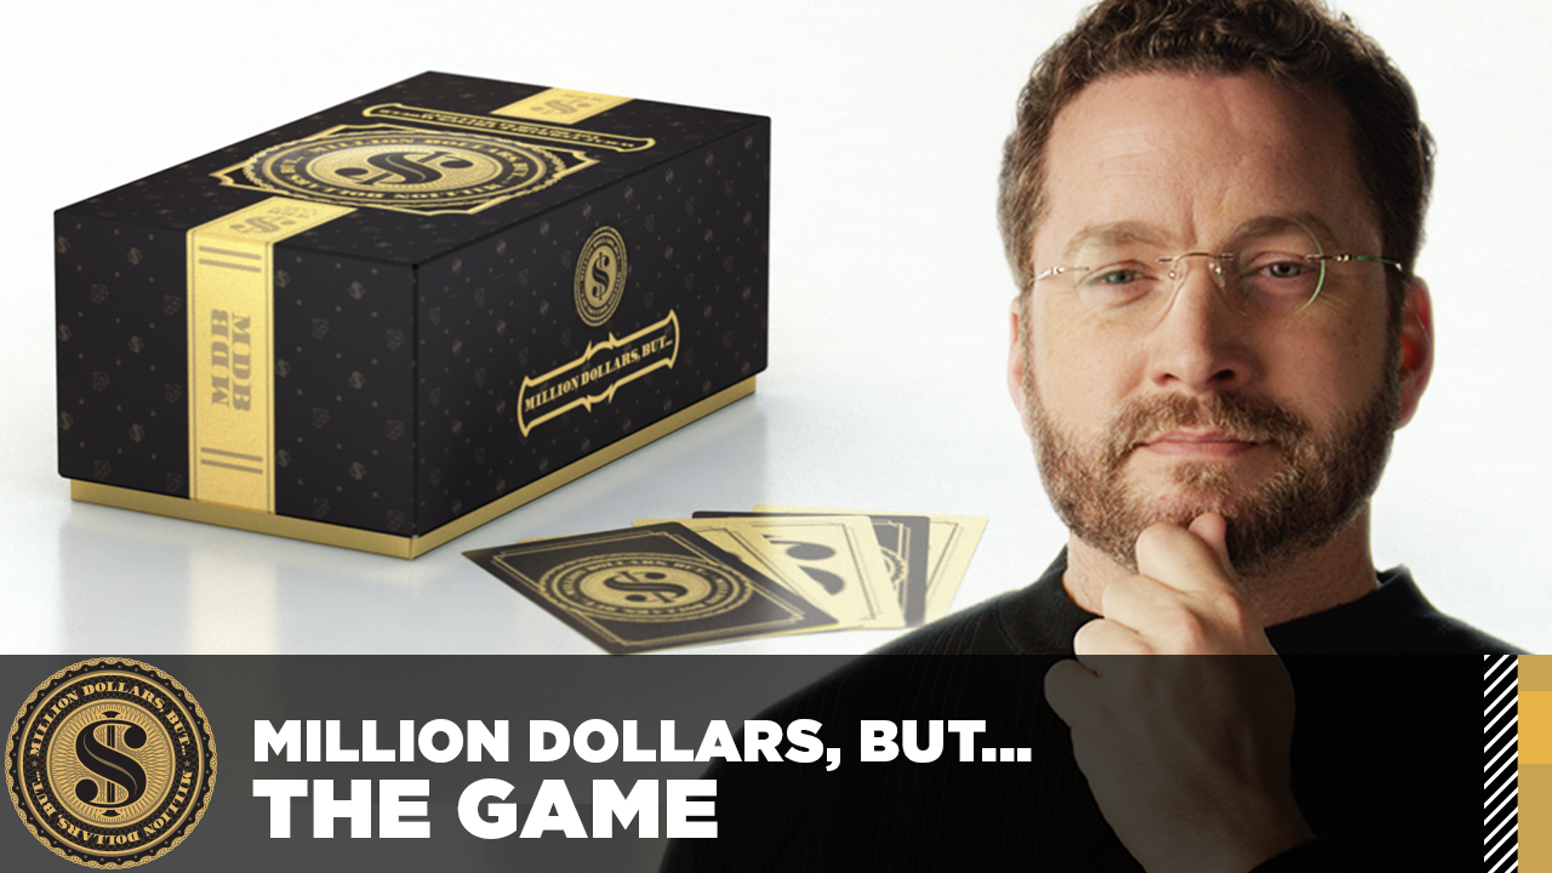 million dollars but the game by rooster teeth kickstarter